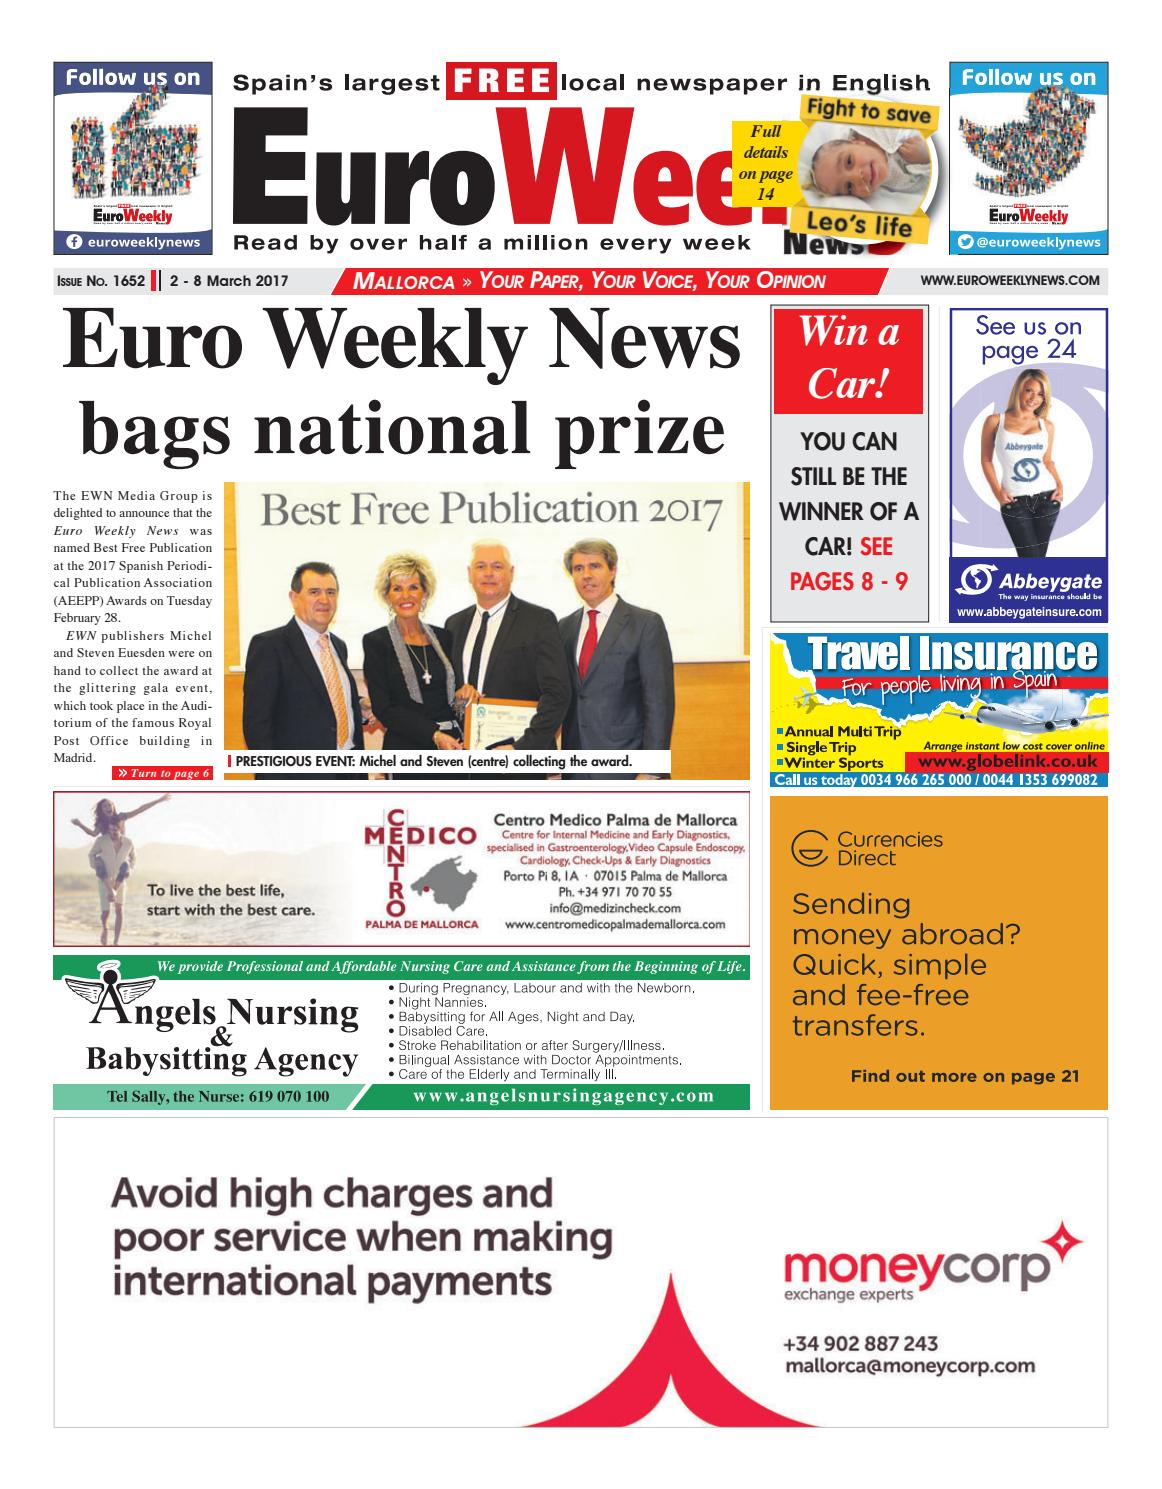 Euro weekly news mallorca 2 8 march 2017 issue 1652 by euro euro weekly news mallorca 2 8 march 2017 issue 1652 by euro weekly news media sa issuu fandeluxe Gallery